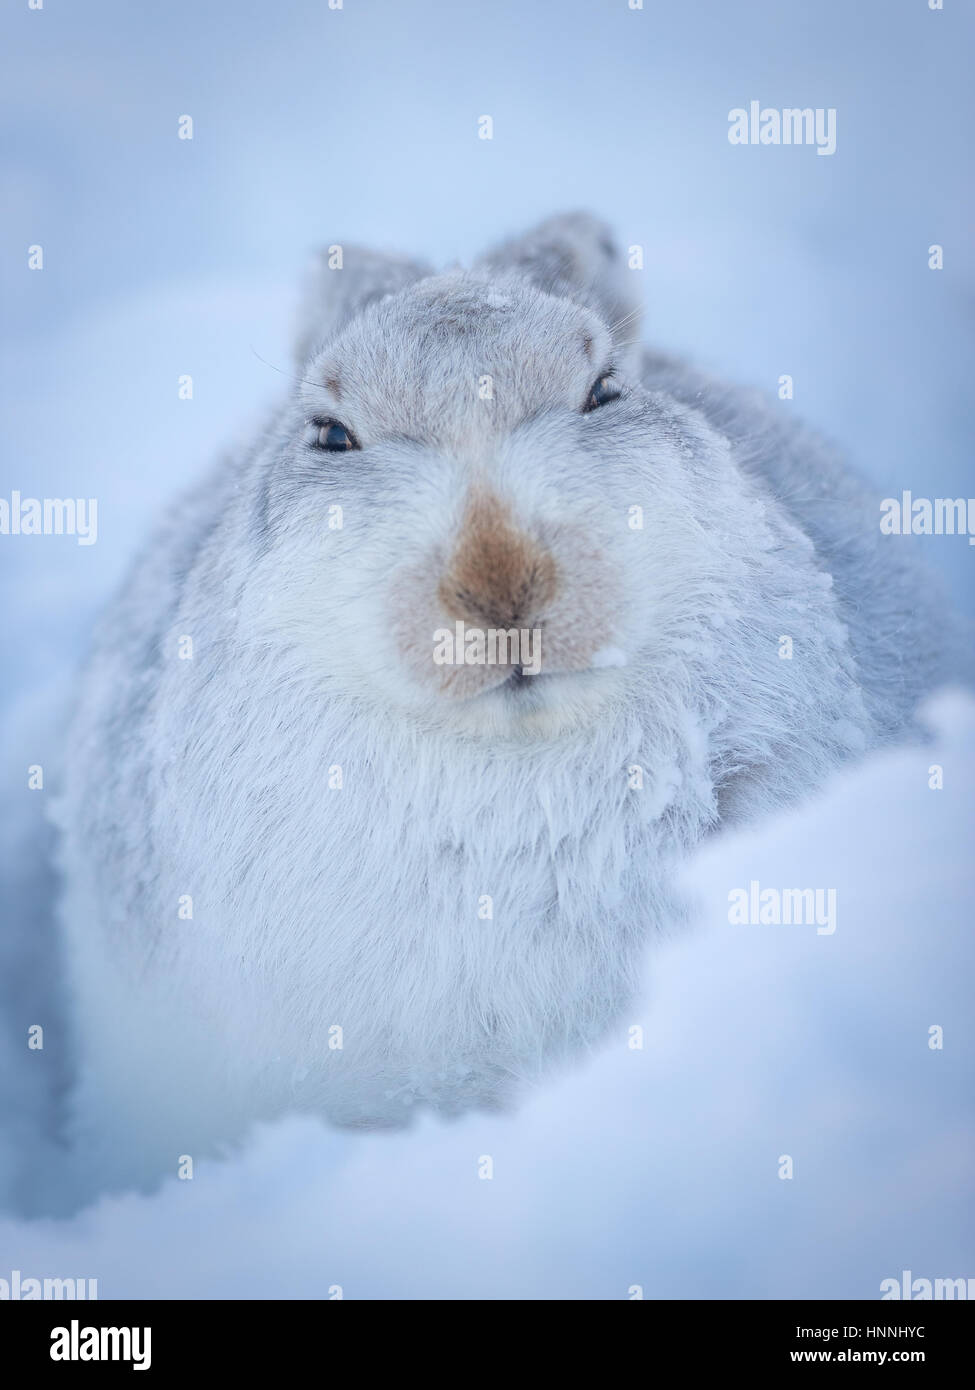 Scottish Mountain Hare (Lepus timidus) sitting among snow in Cairngorms National Park, Highlands, Scotland, Great - Stock Image